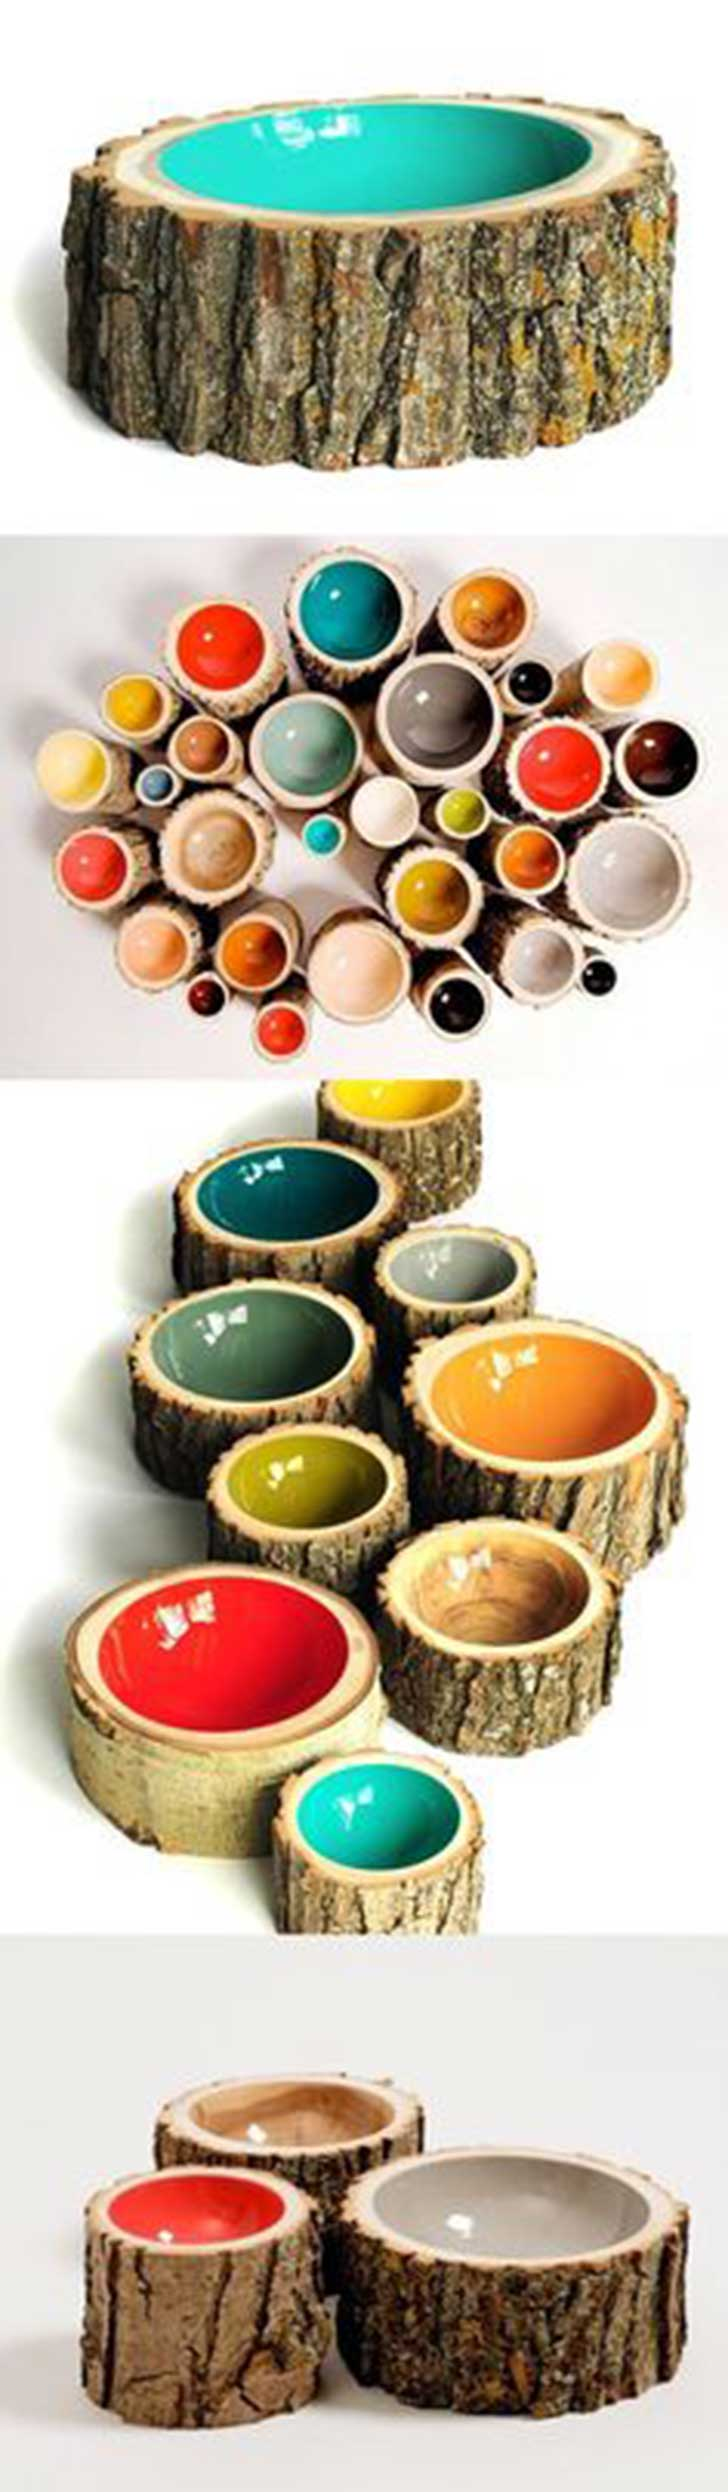 Exceptionally-Creative-DIY-Tree-Stumps-Projects-to-Complement-Your-Interior-With-Organicity-homesthetics-decor-26